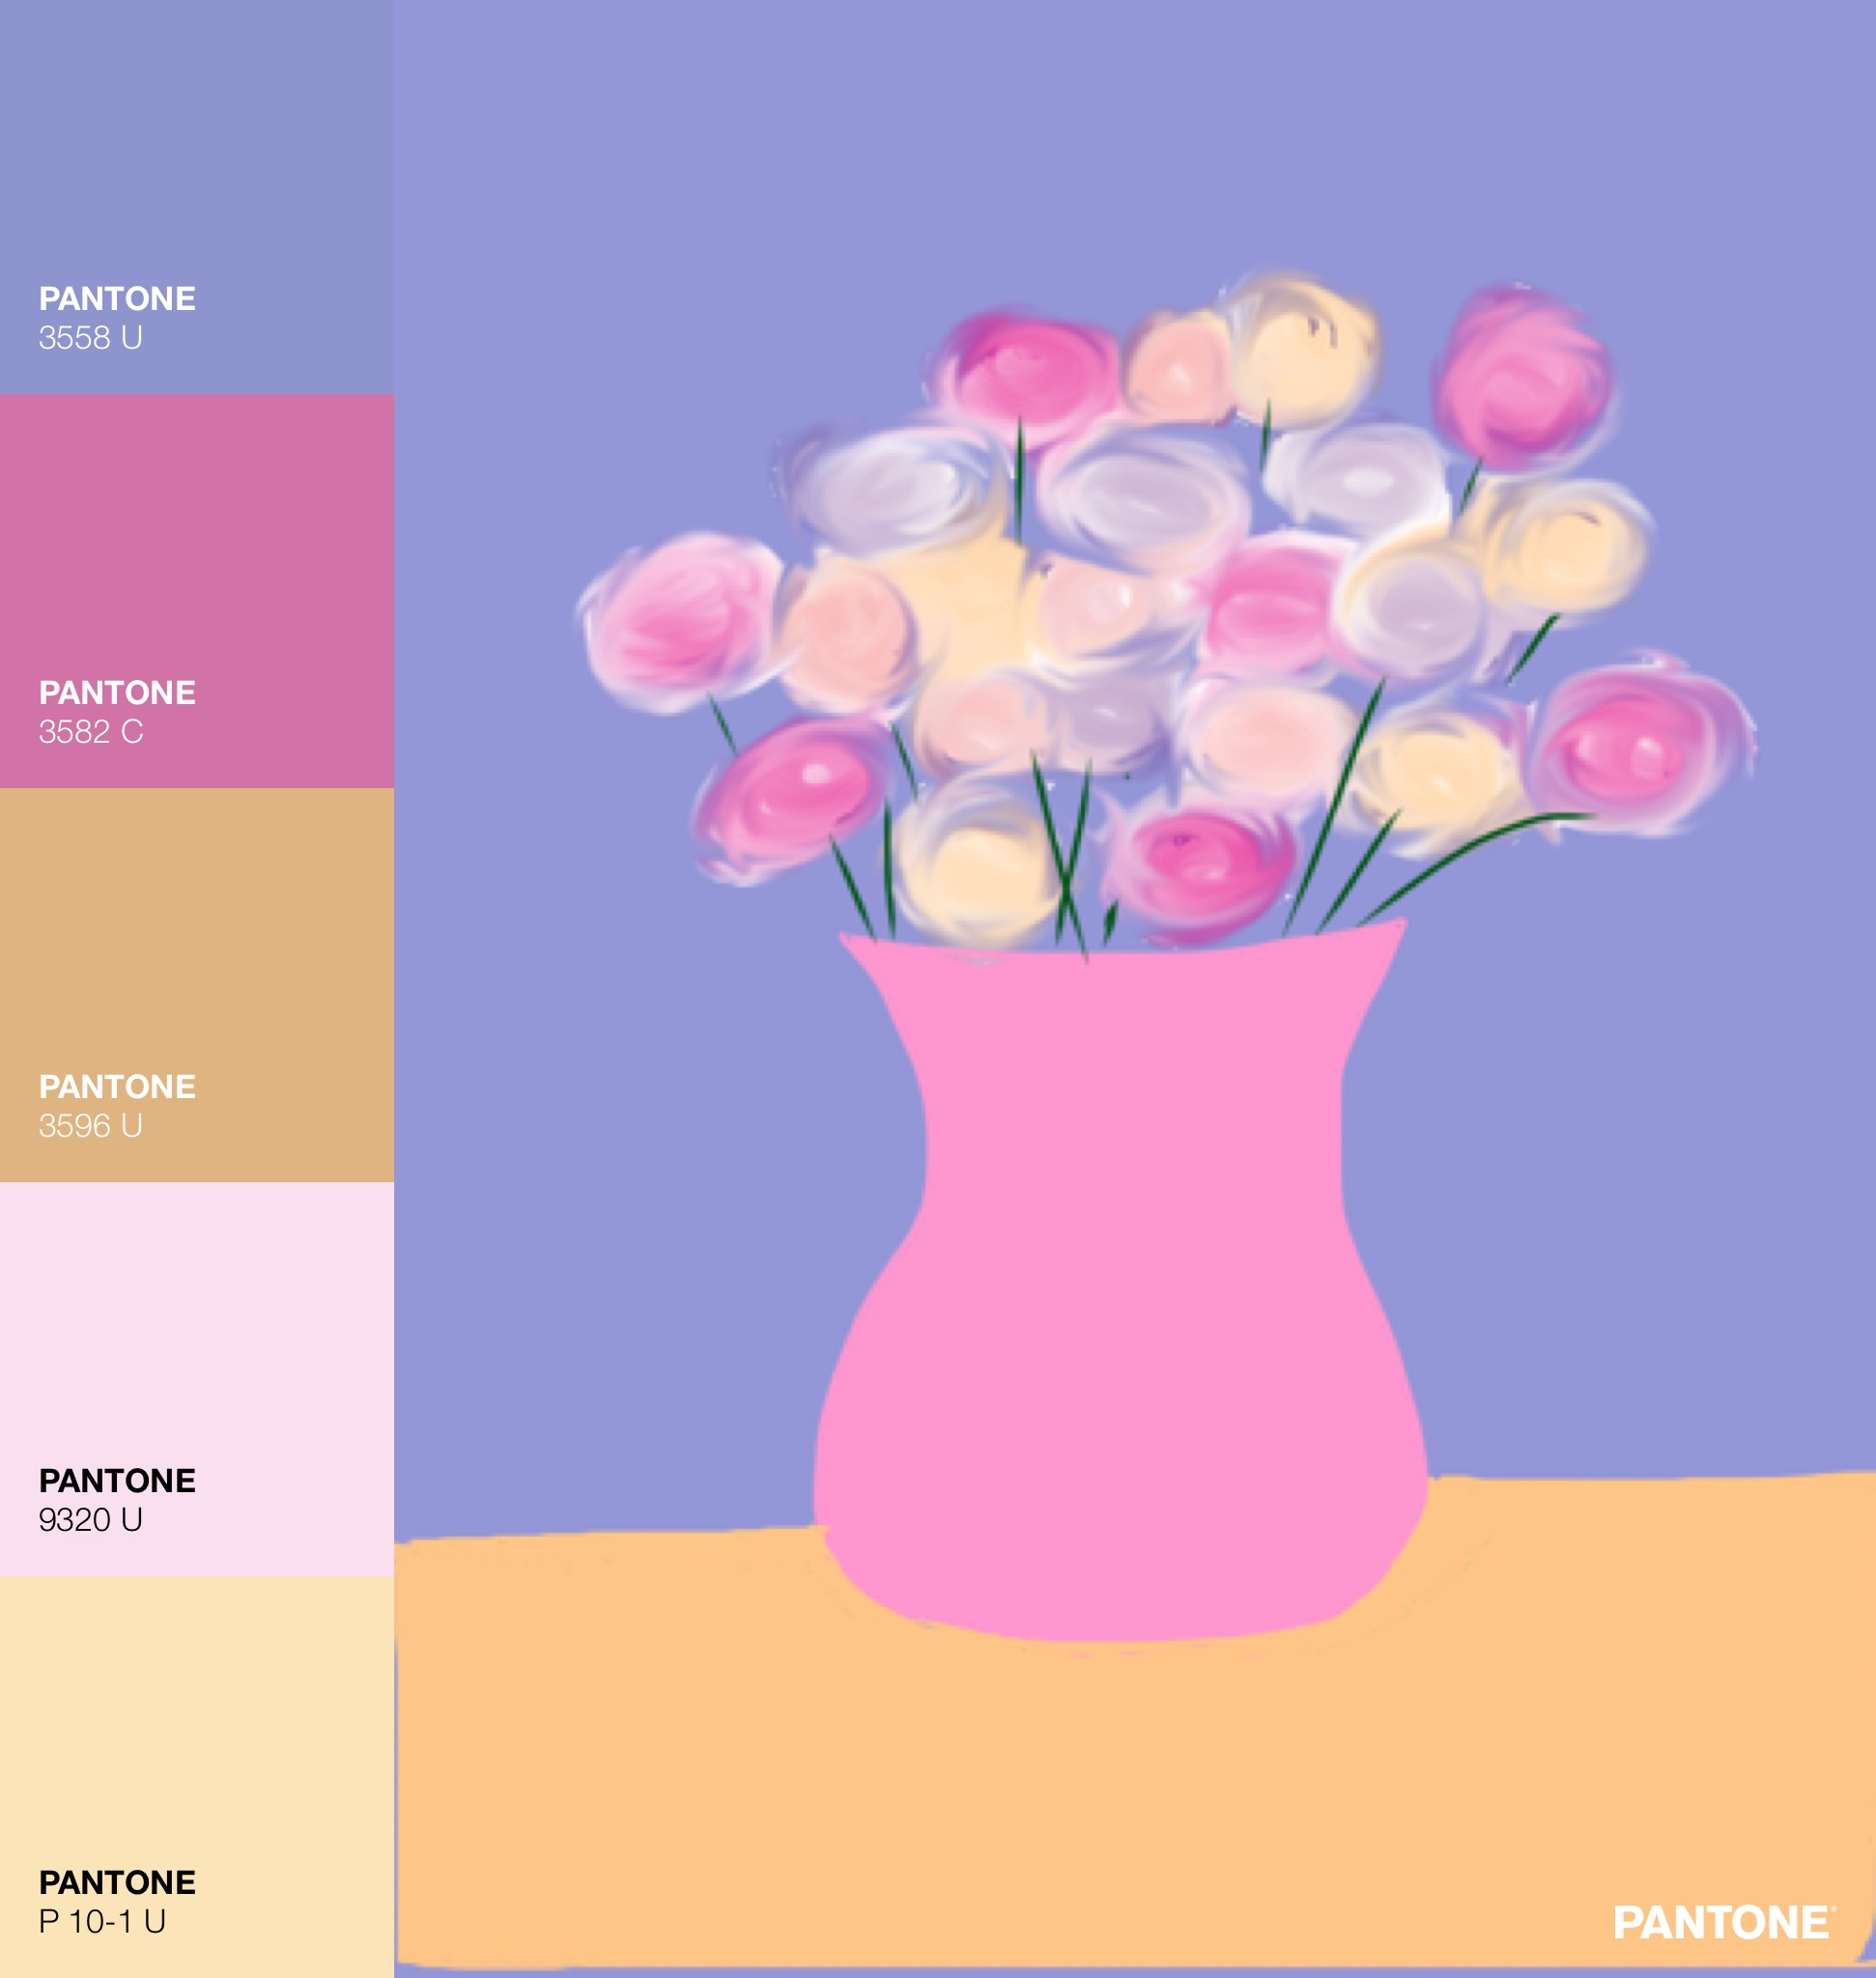 Pink Vase of Flowers Painting with Pantone Color Palette